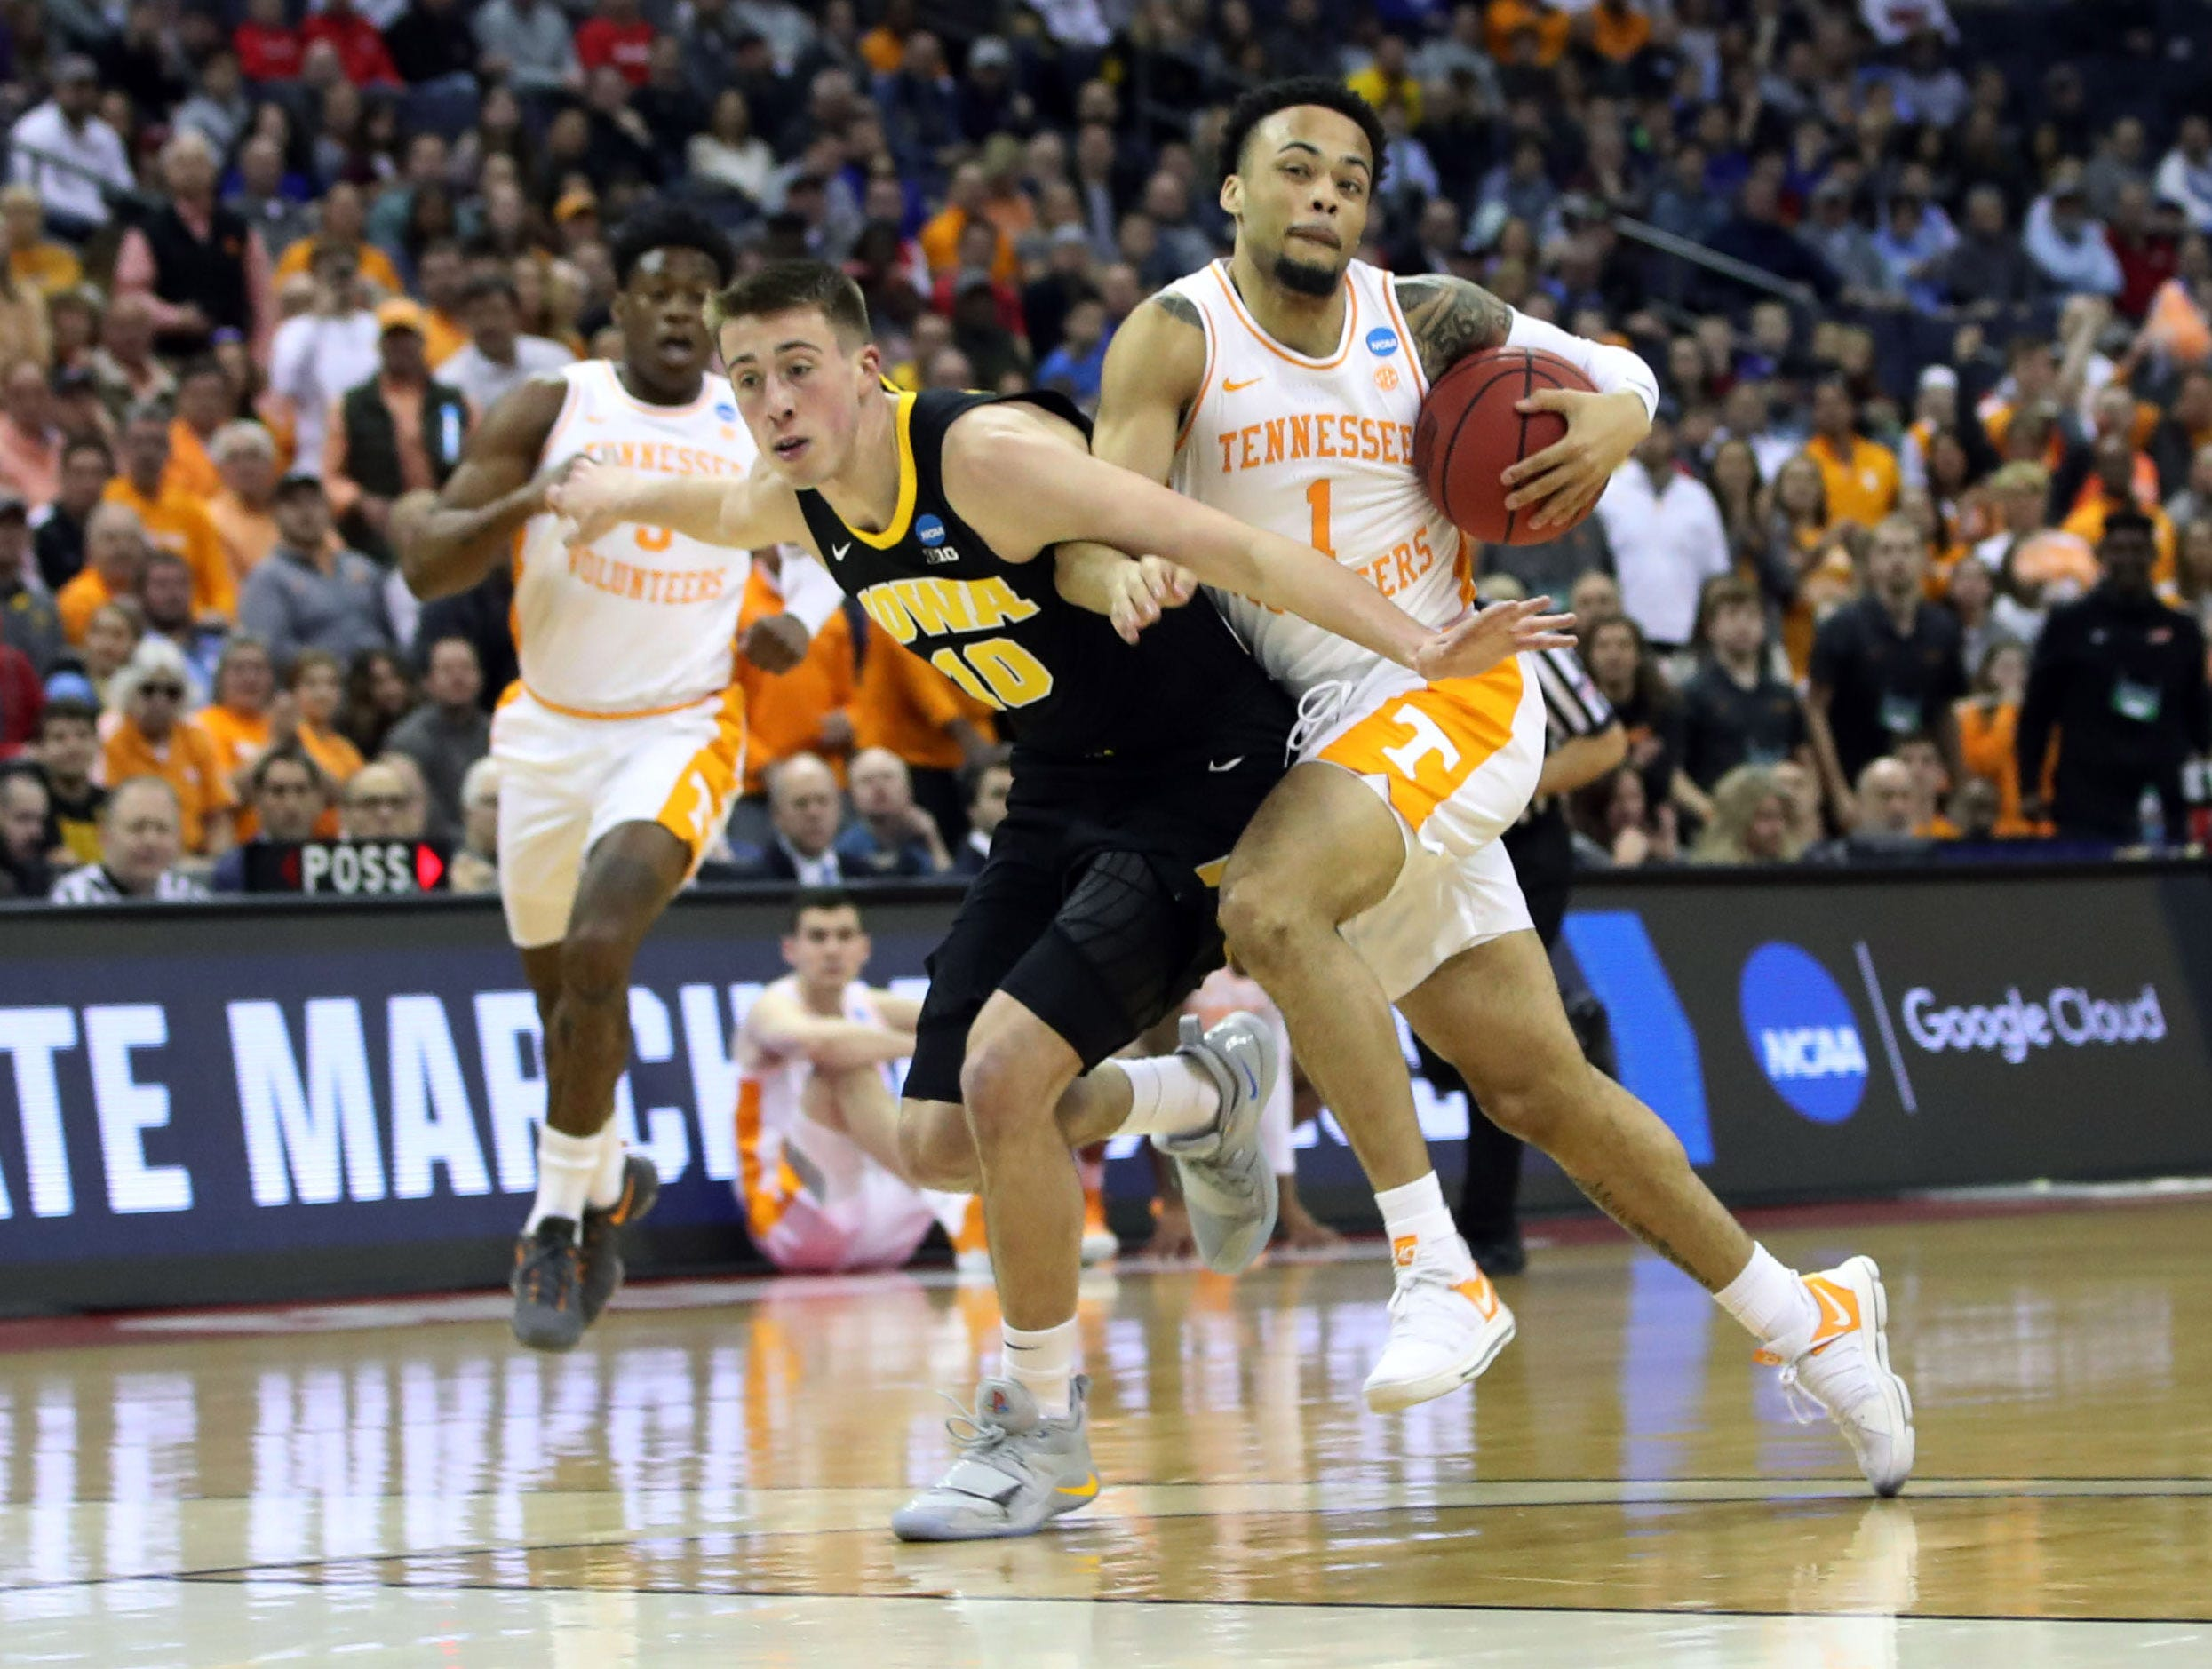 Tennessee Volunteers guard Lamonte Turner (1) drives down the court defended by Iowa Hawkeyes guard Joe Wieskamp (10) in the first half in the second round of the 2019 NCAA Tournament at Nationwide Arena.